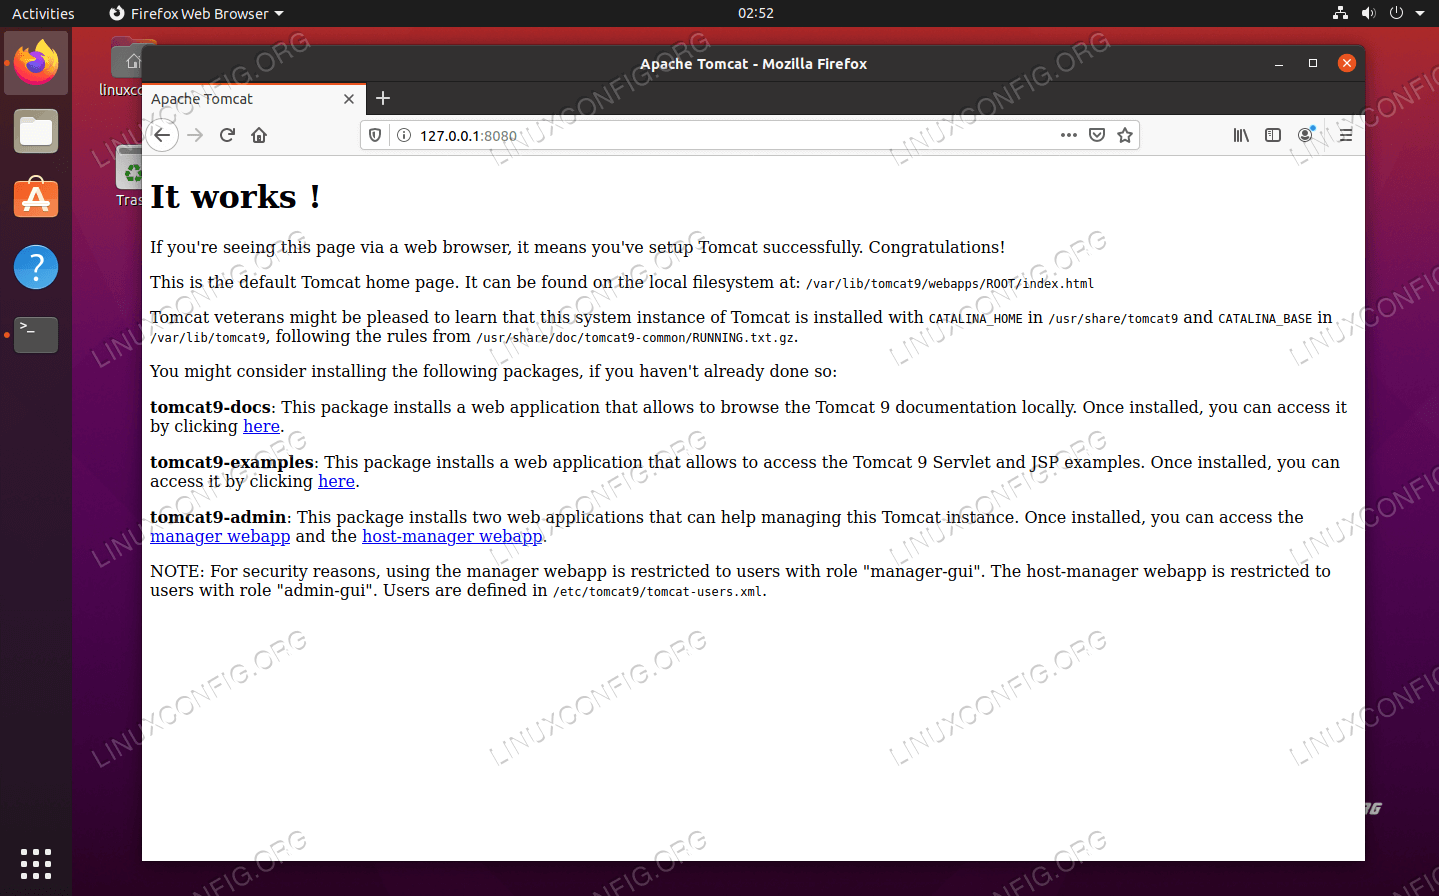 Apache Tomcat is running and is connectable from a browser